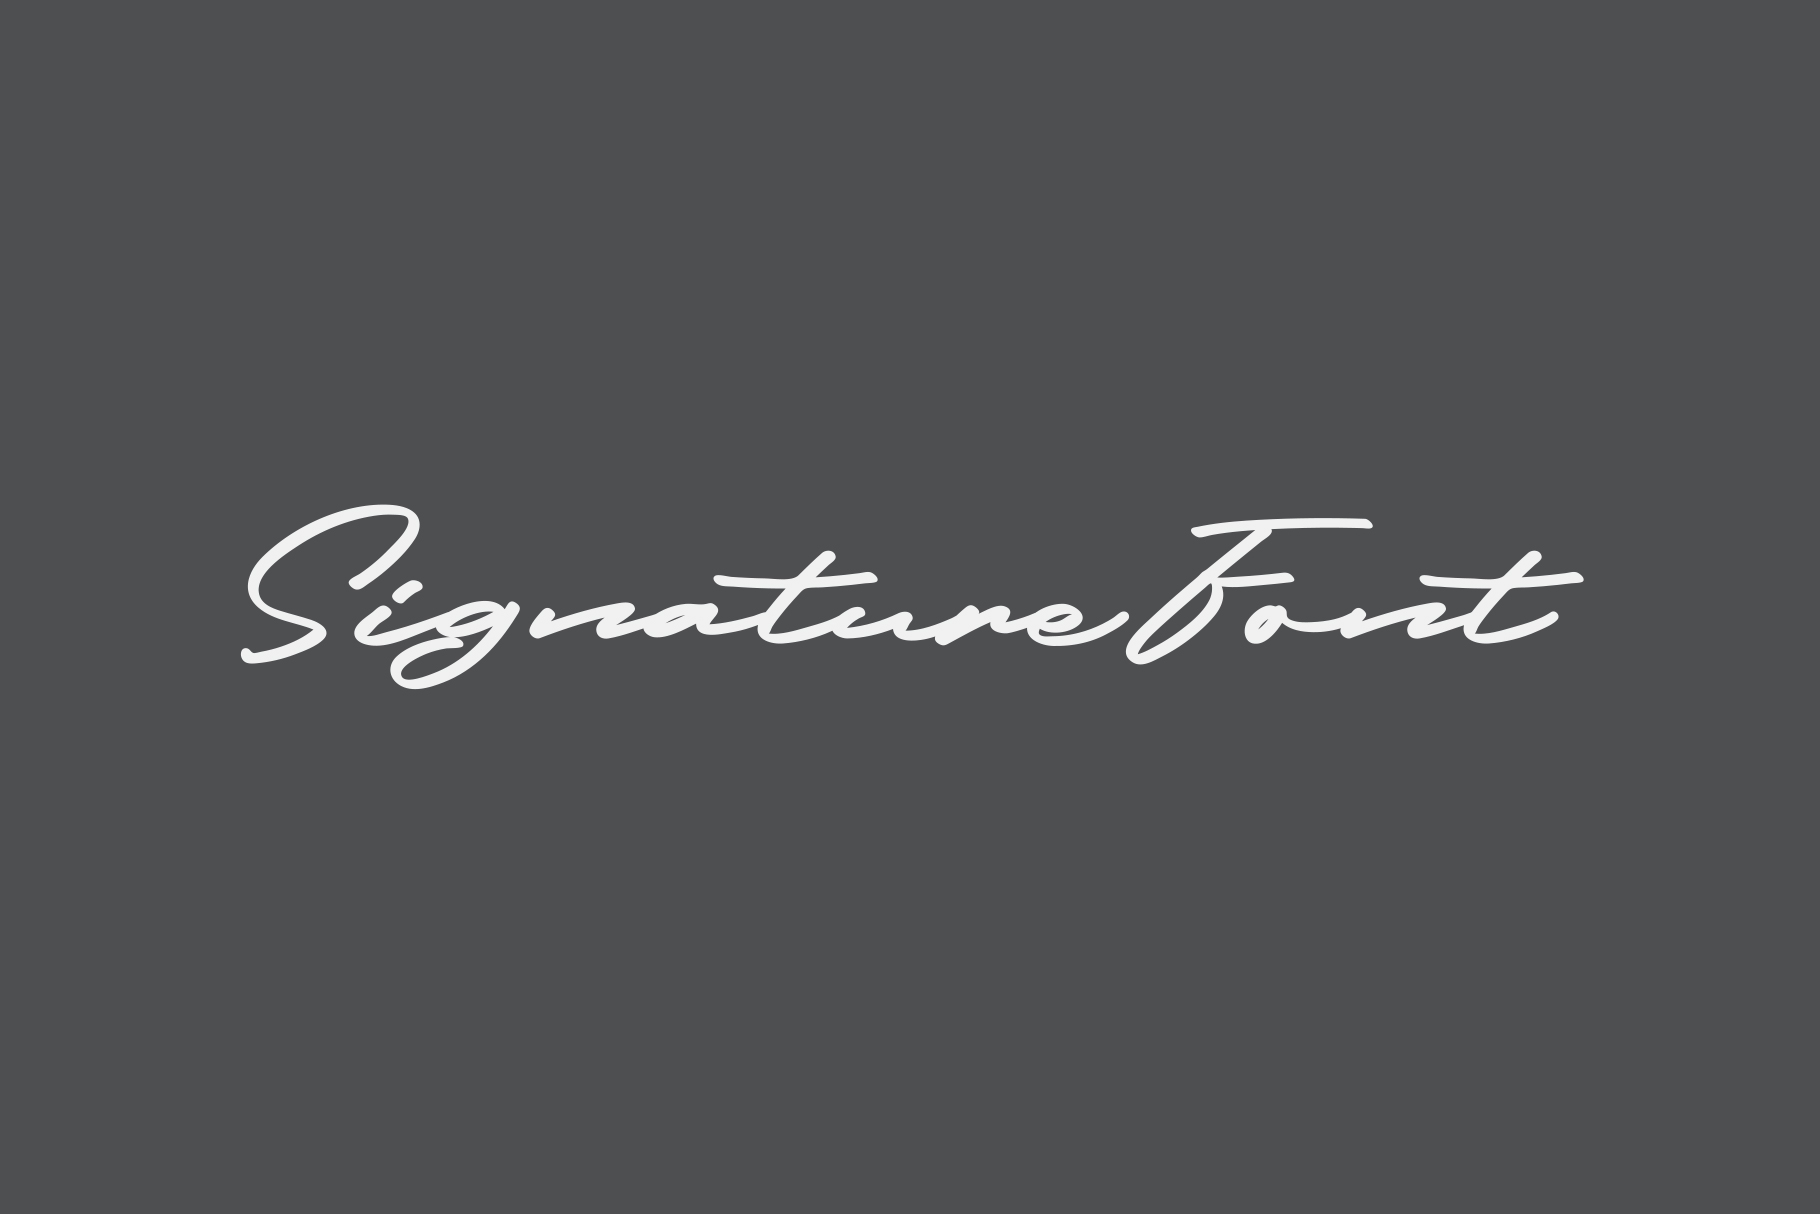 Frederick - a Classic Script Font example image 2